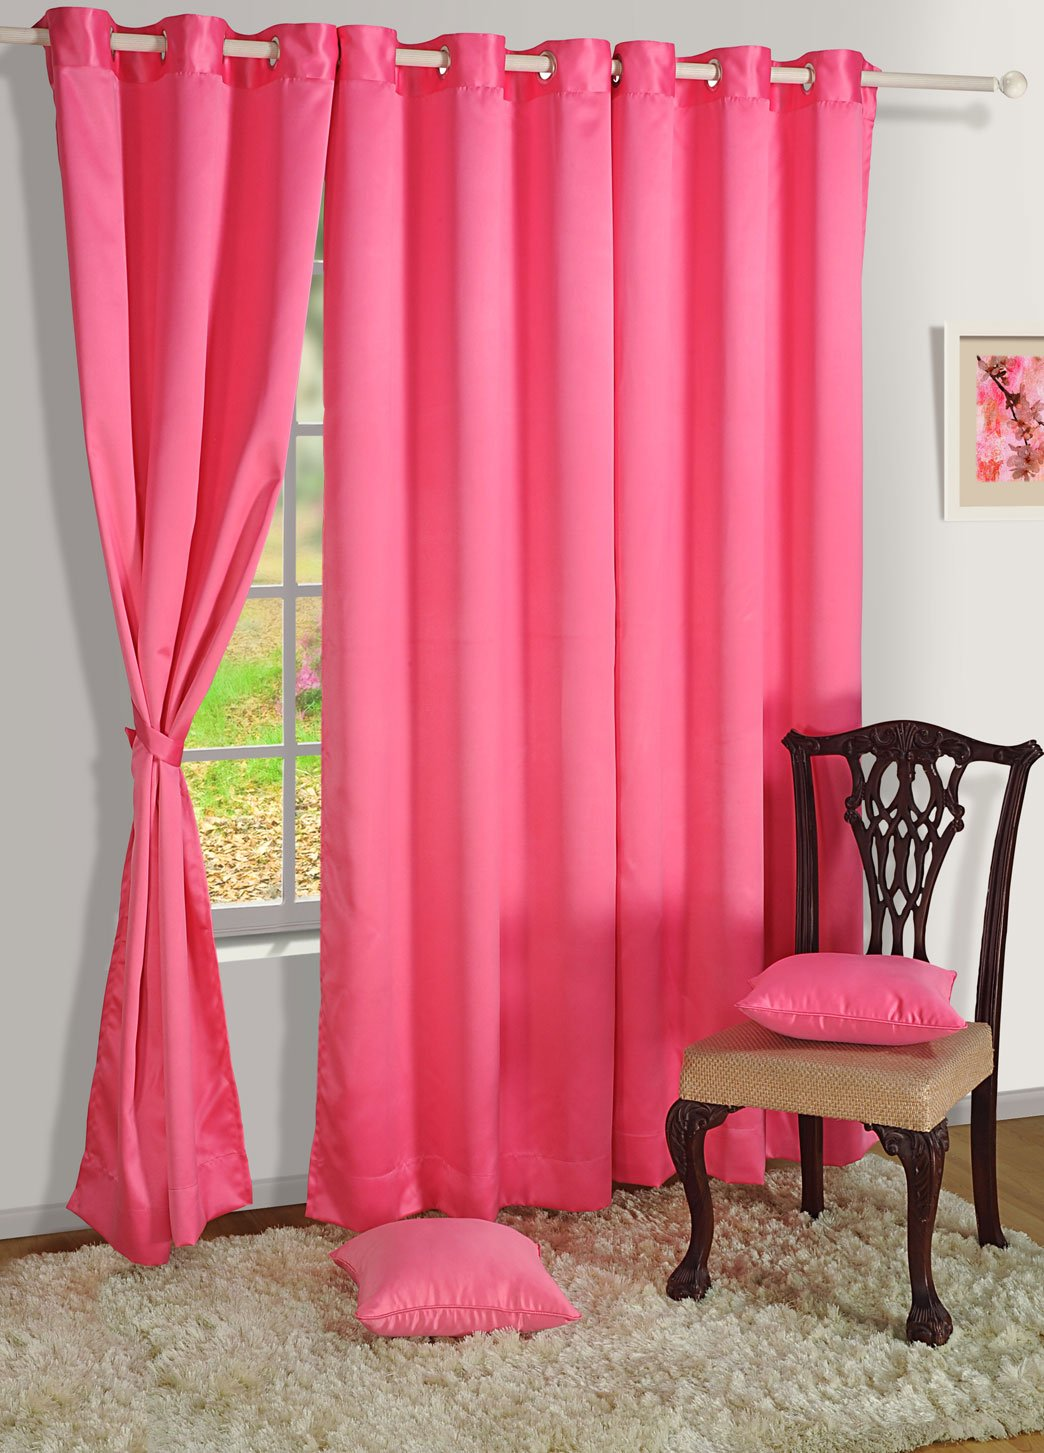 Hot pink curtains - Swayam Curtain Concept Premium Blackout Eyelit Faux Silk Door Curtain 48 X90 Pink Bld01 1010 Hot Pink Amazon In Home Kitchen